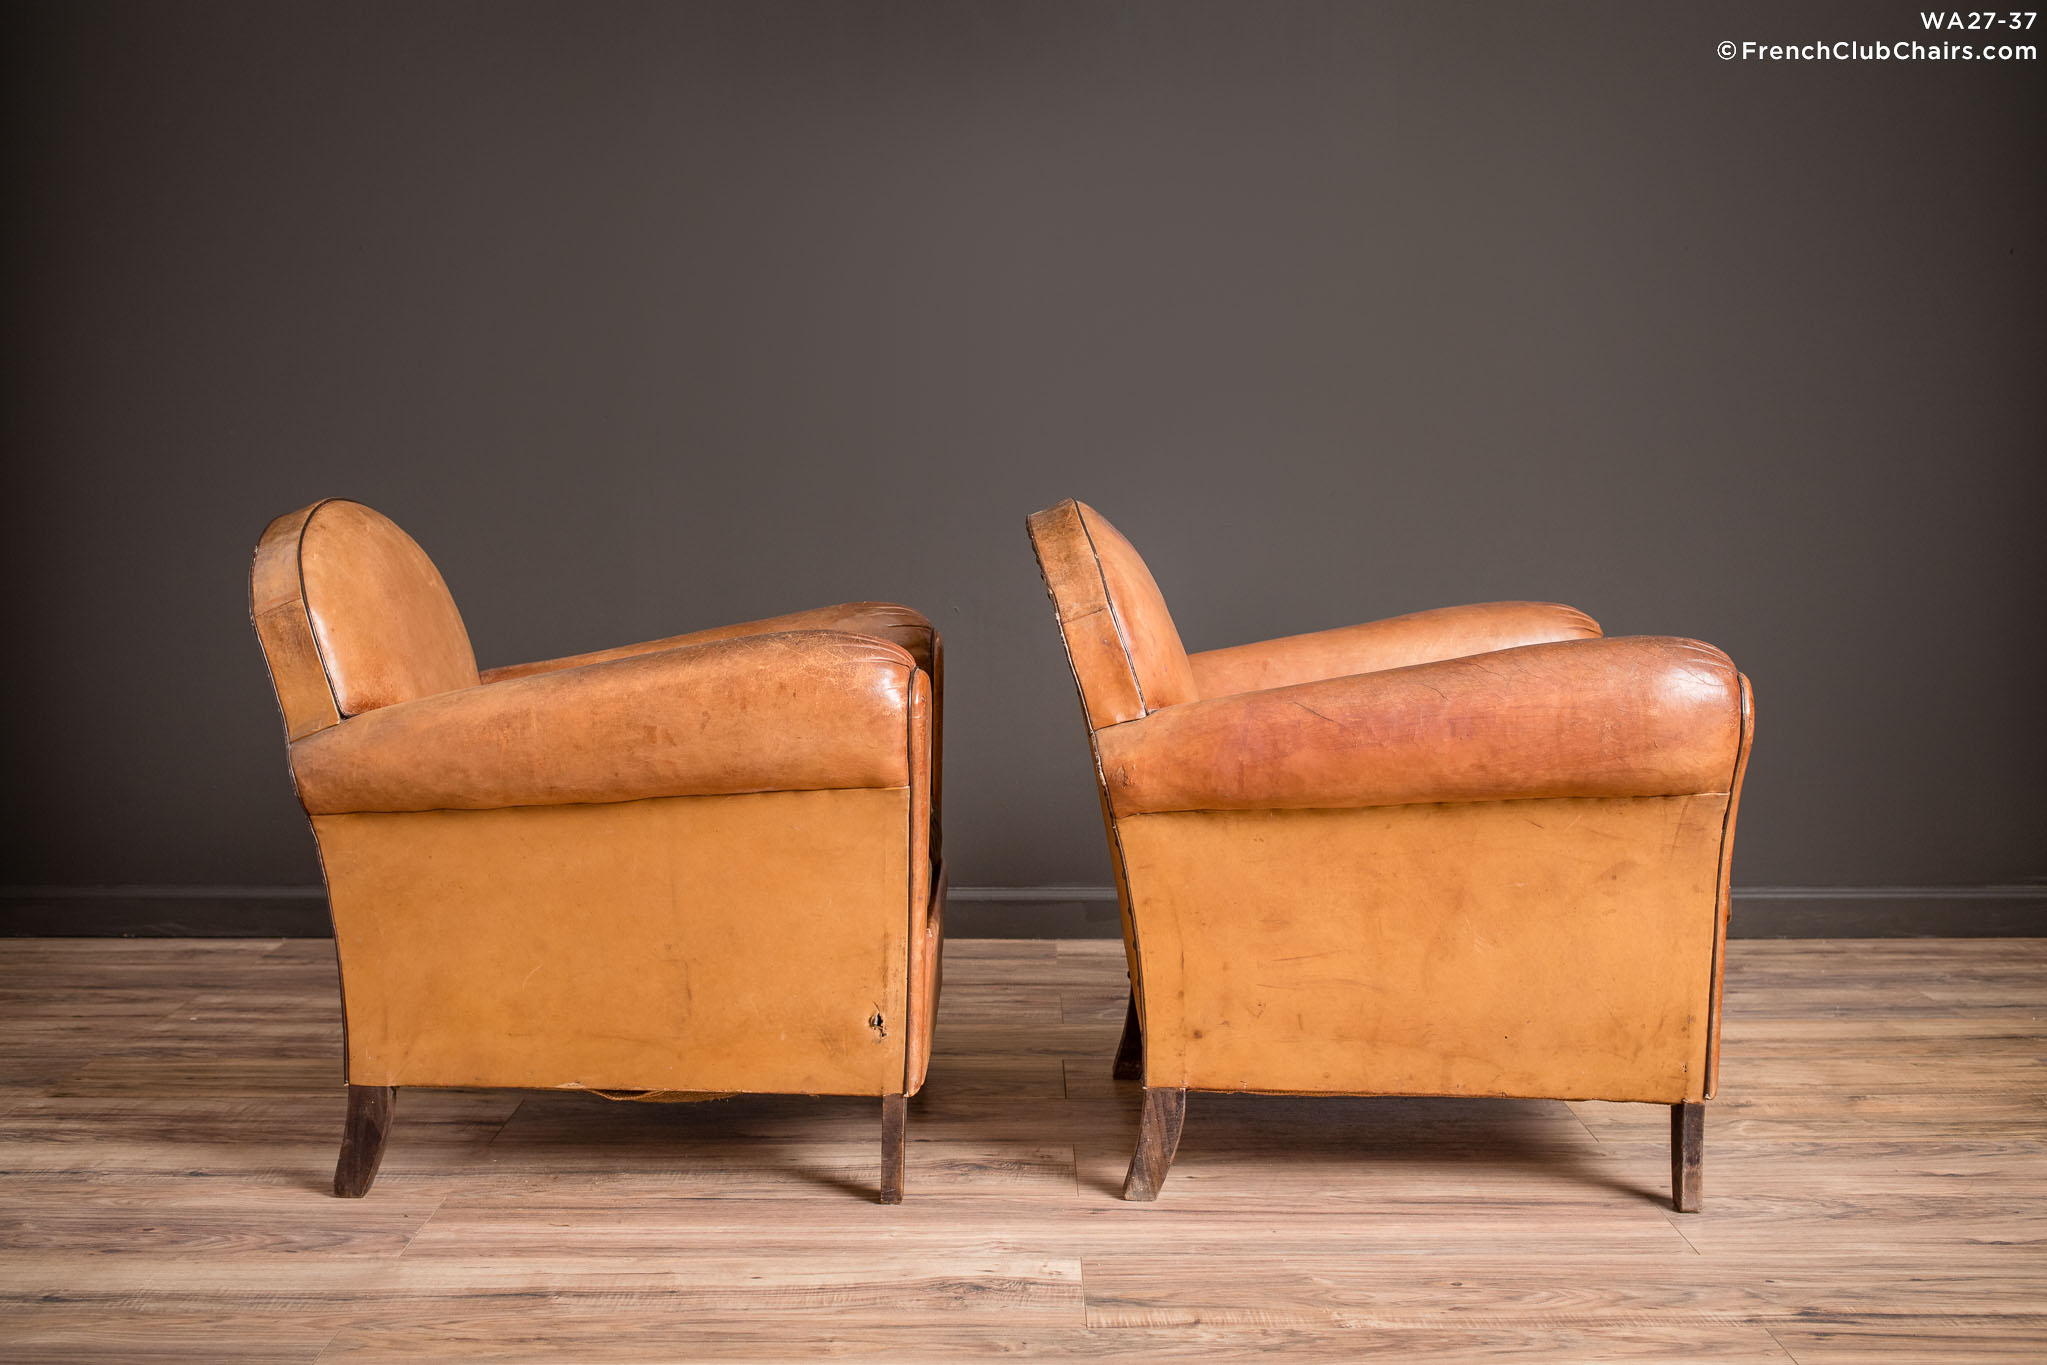 WA_27-37_Petite_Cinema_Etretat_Pair_R_3RT-v01-williams-antiks-leather-french-club-chair-wa_fcccom